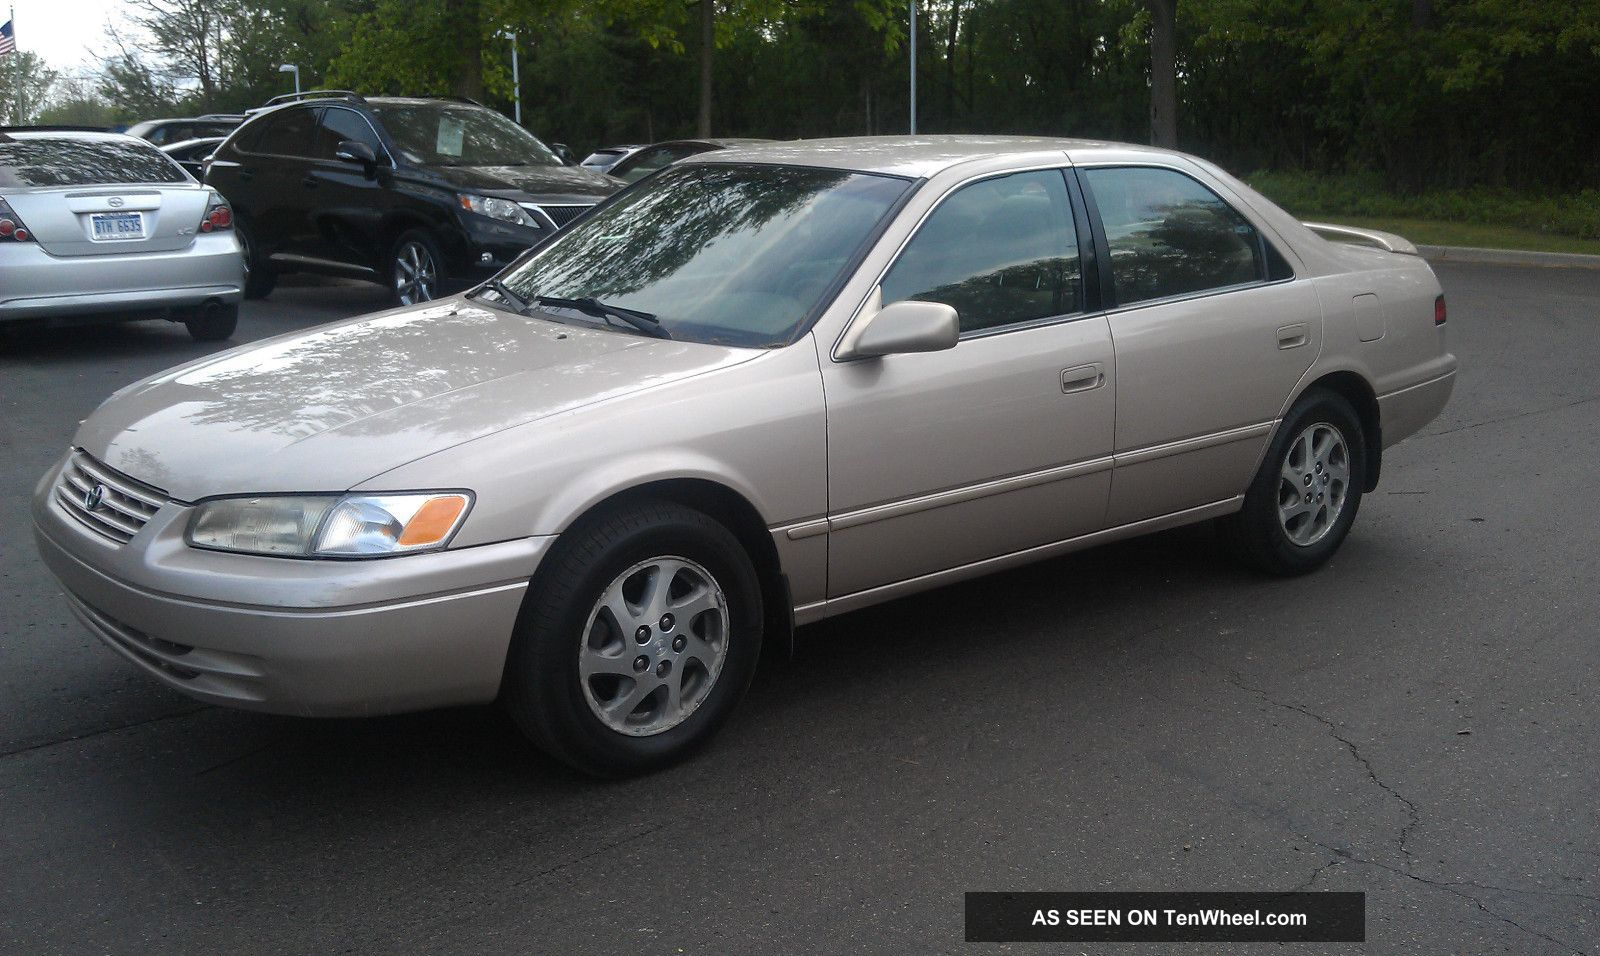 hight resolution of 1999 toyota camry le 6 cyl 3 0l just detailed good to go runs strong good deal